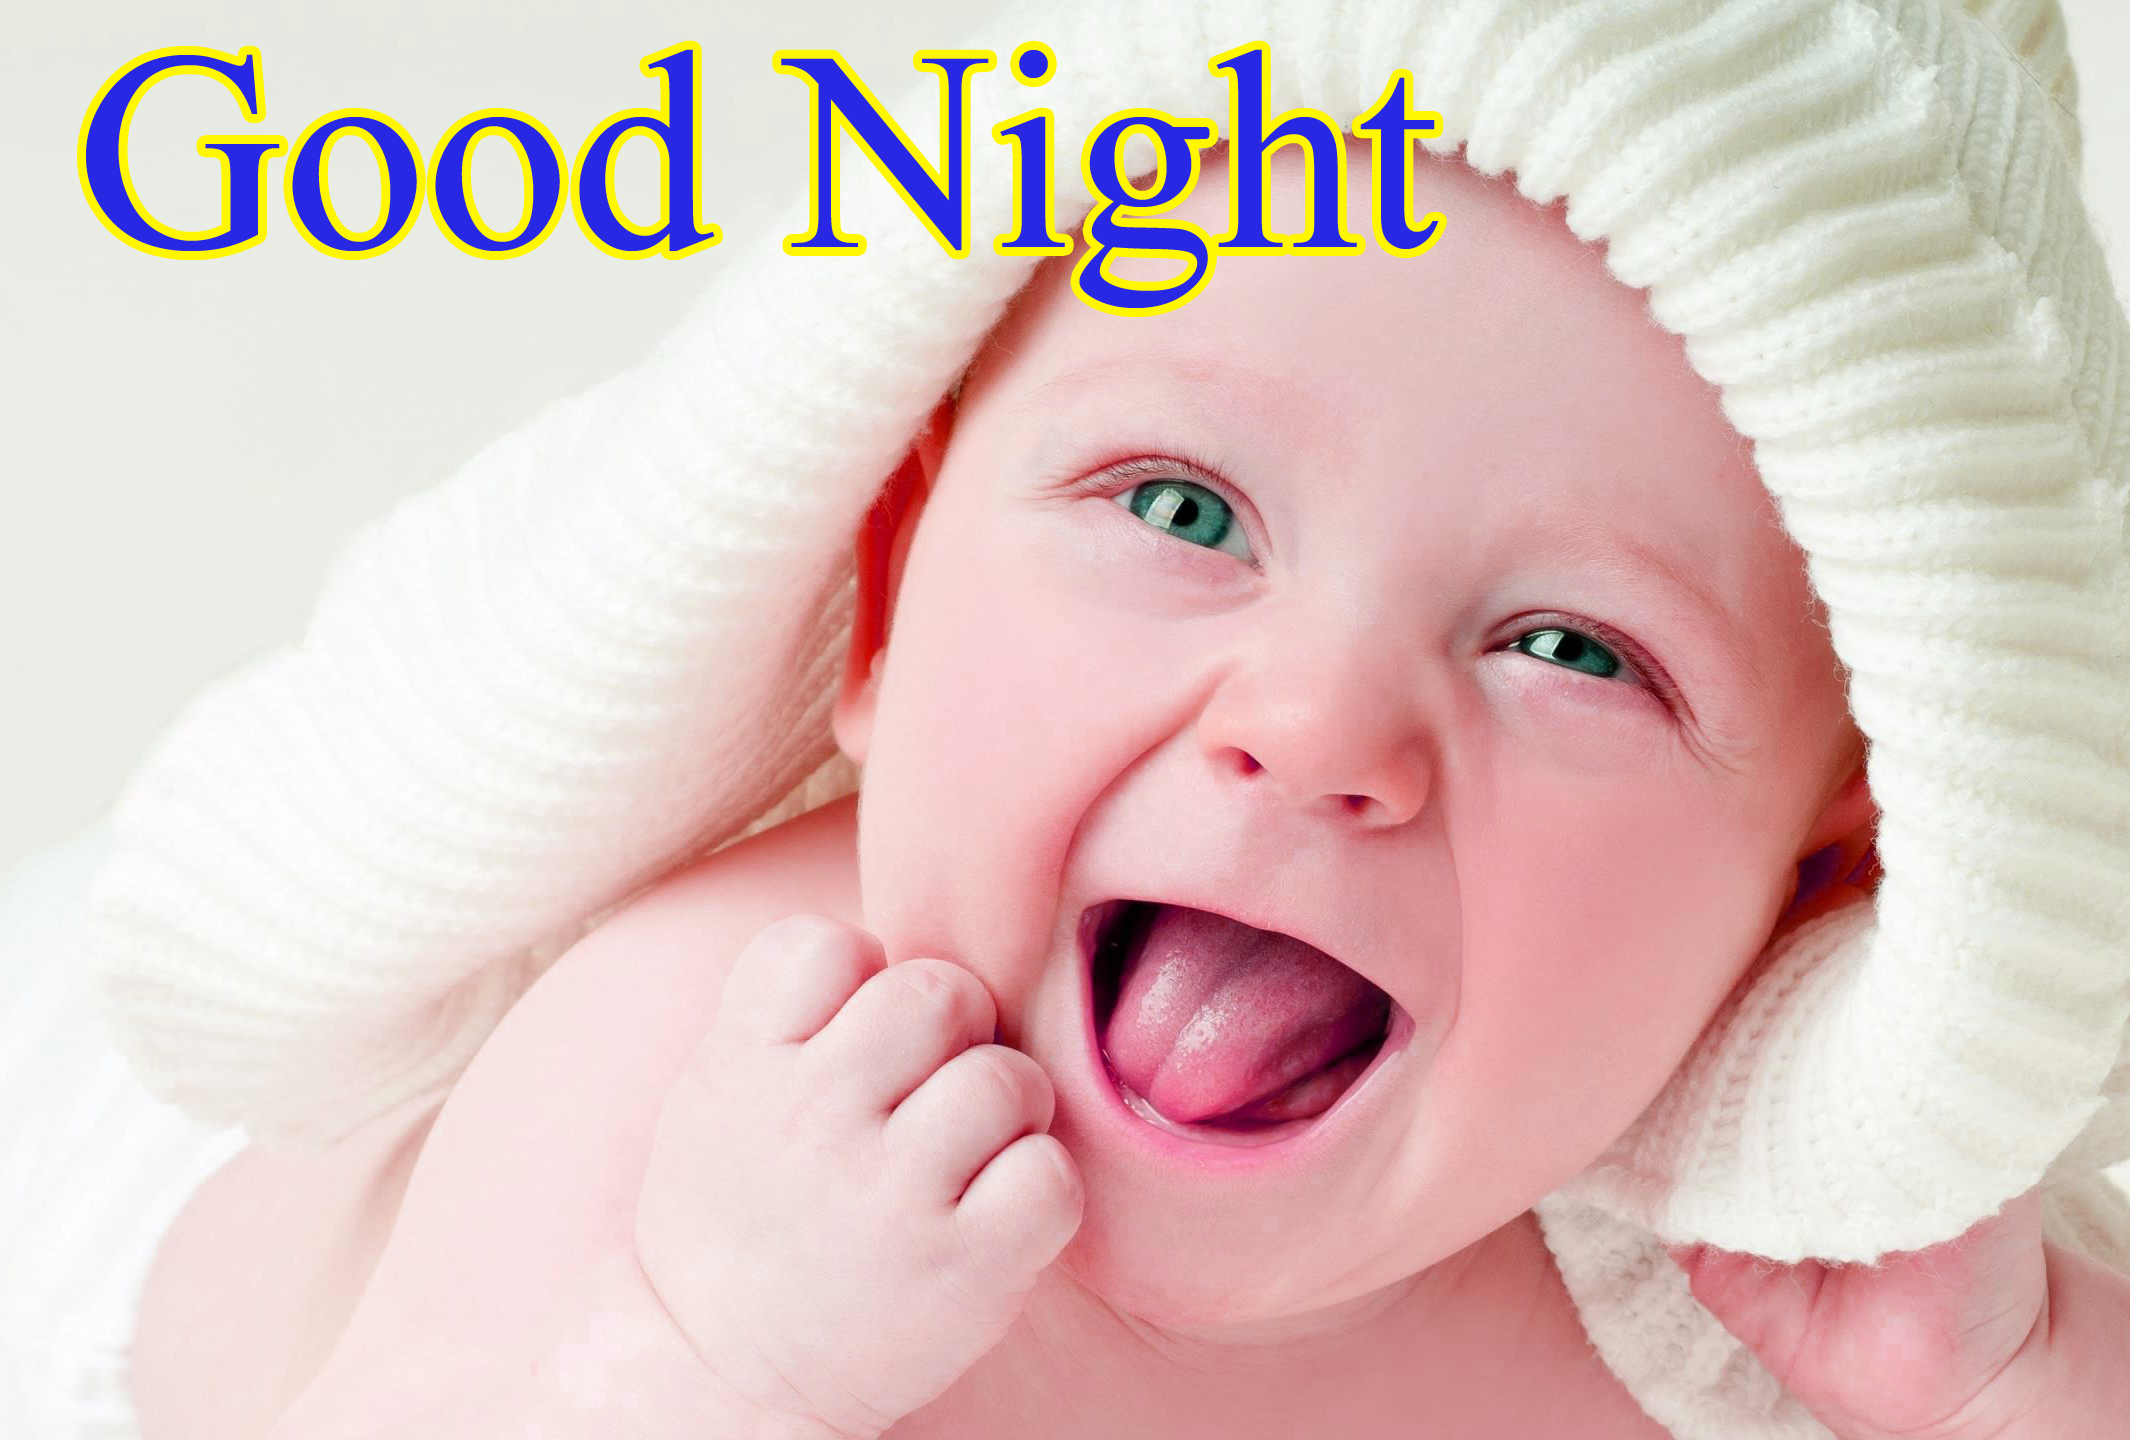 GOOD NIGHT IMAGES WITH CUTE BABY BOYS & GIRLS WALLPAPER PICS DOWNLOAD FOR FACEBOOK